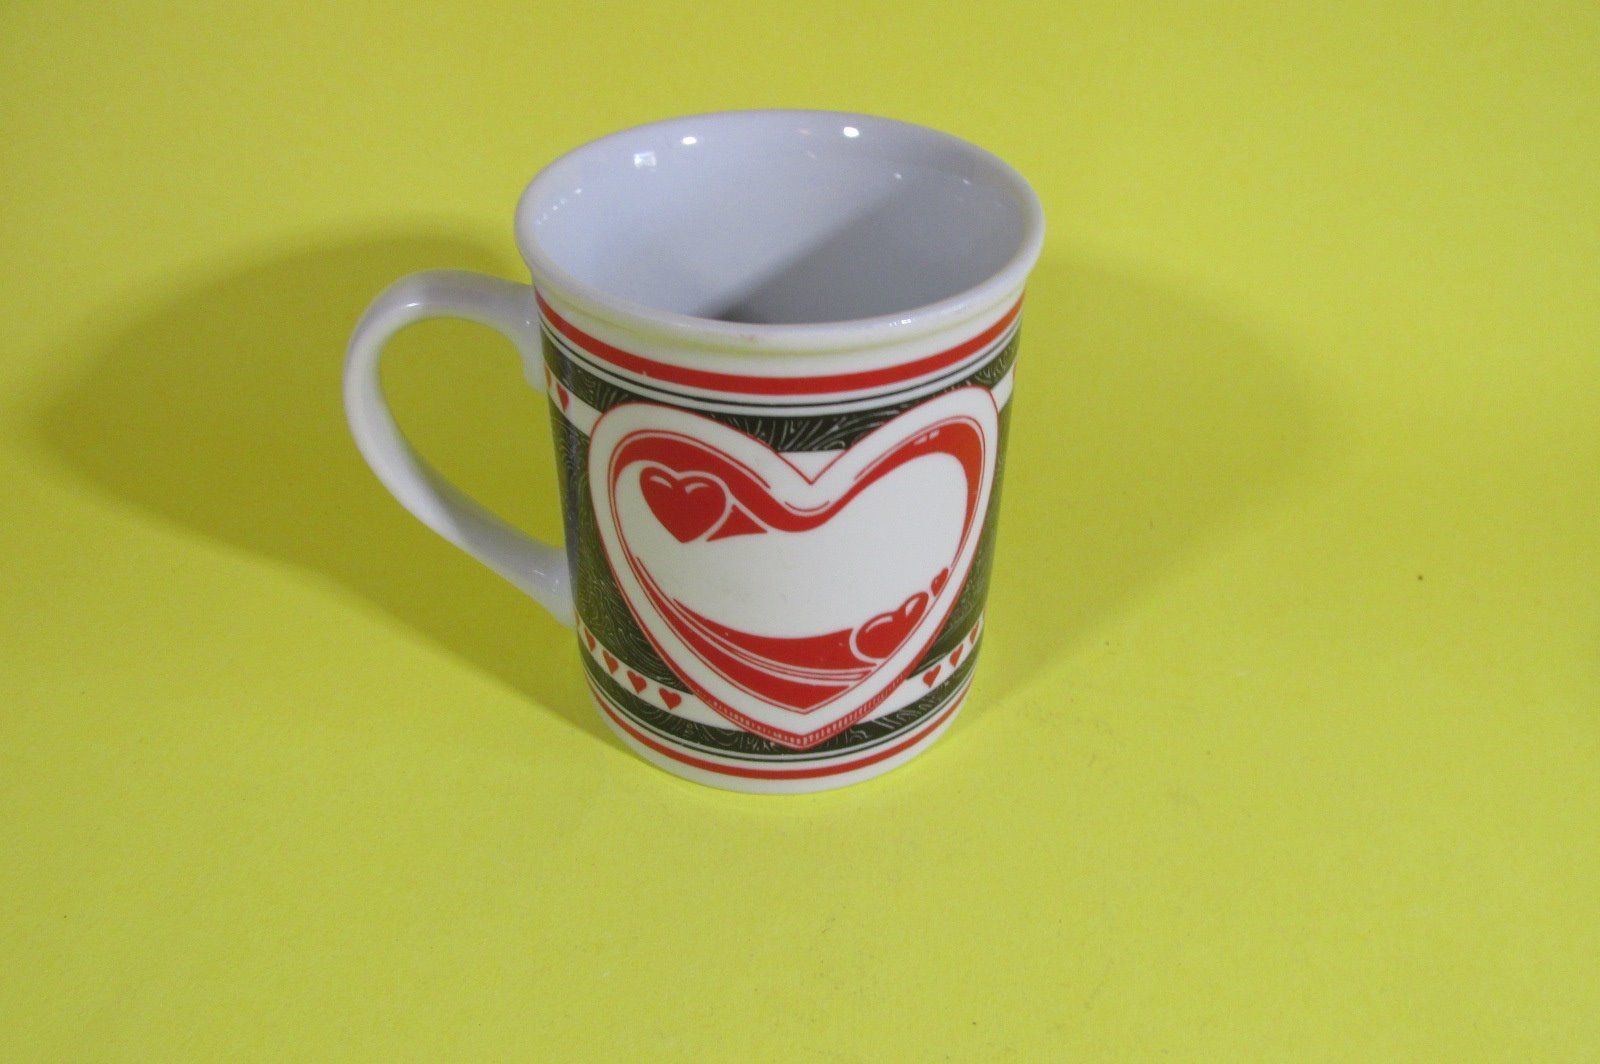 Red and Black Hearts by Westwood Coffee Mug, 1995